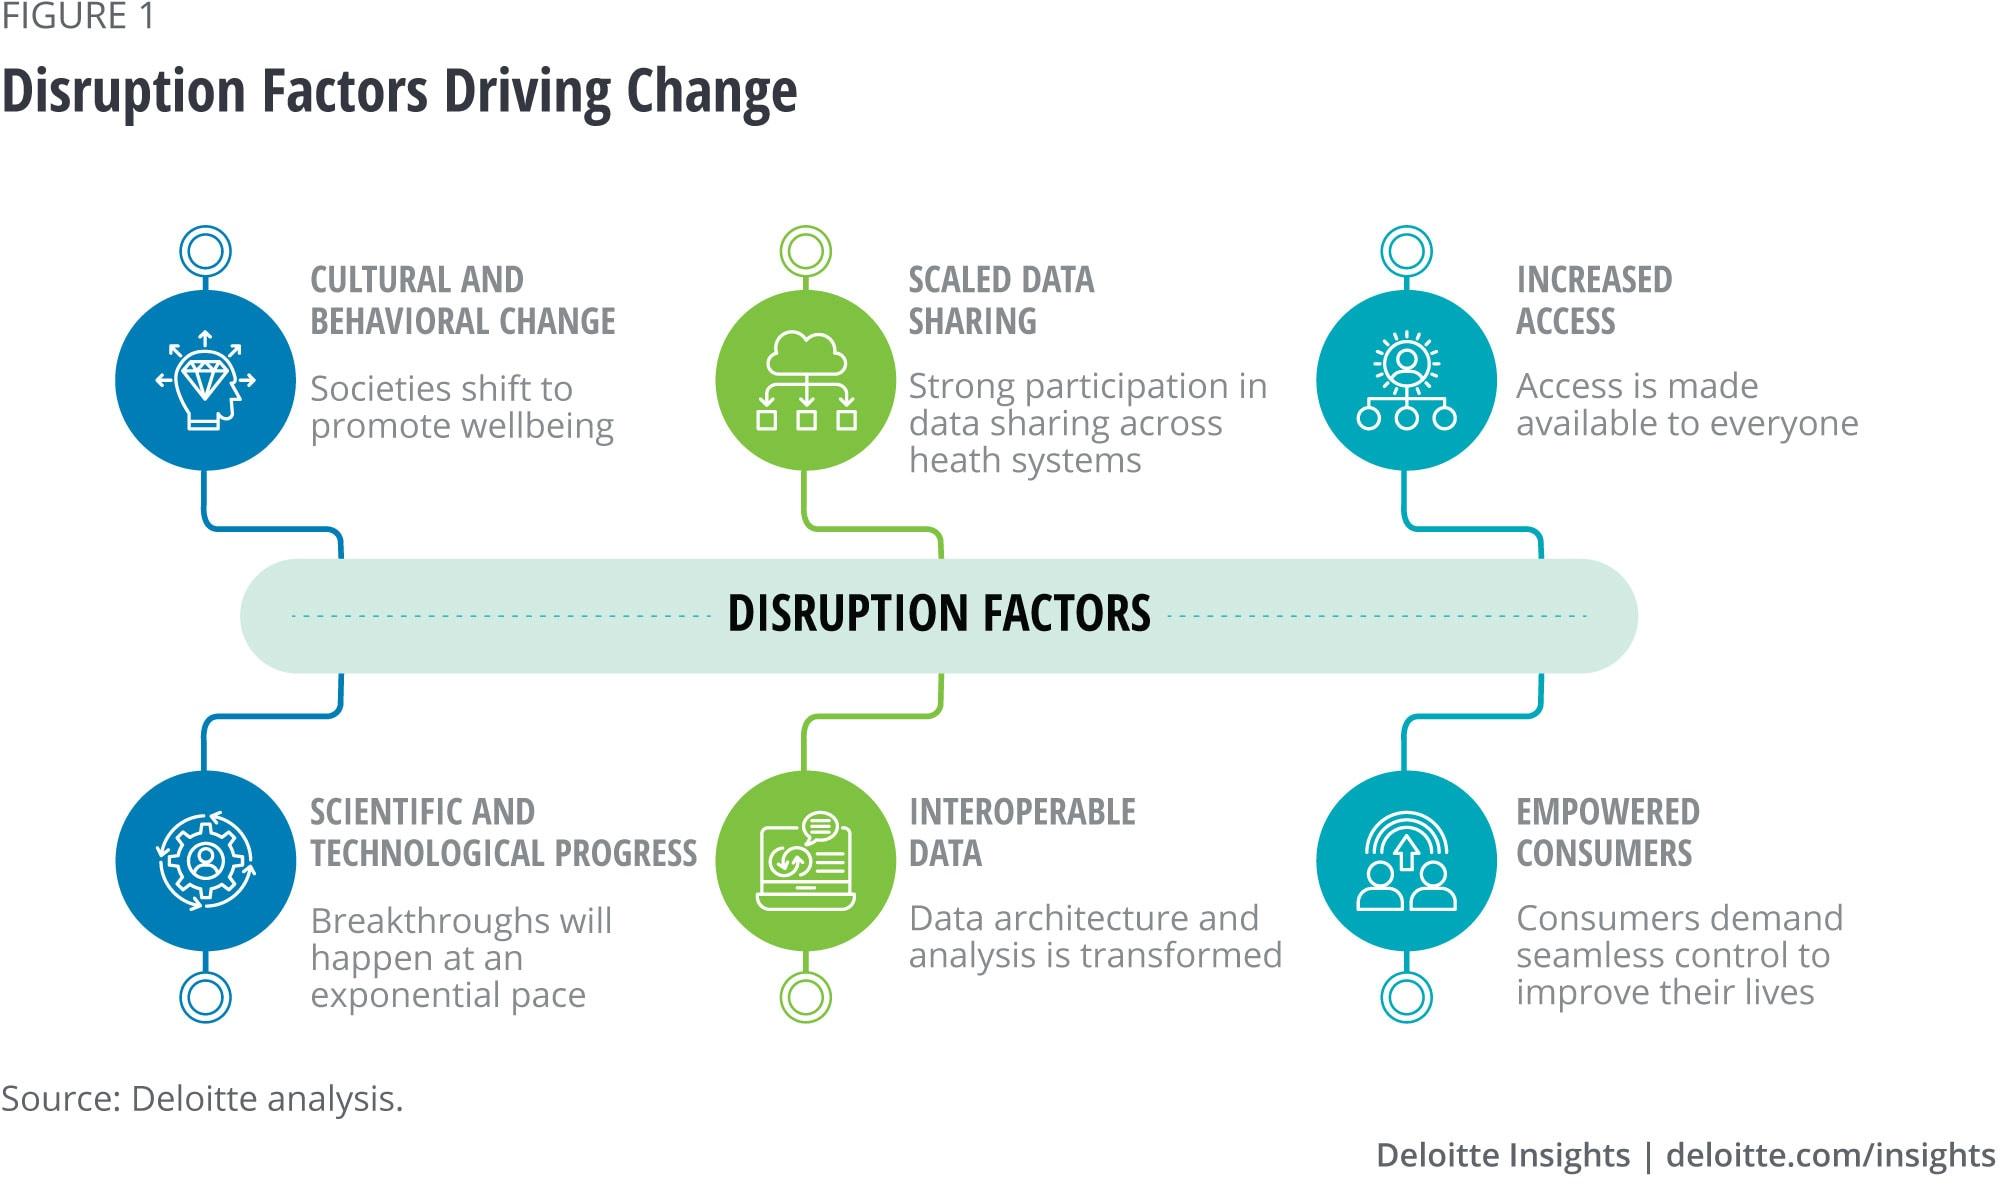 Disruption Factors Driving Change